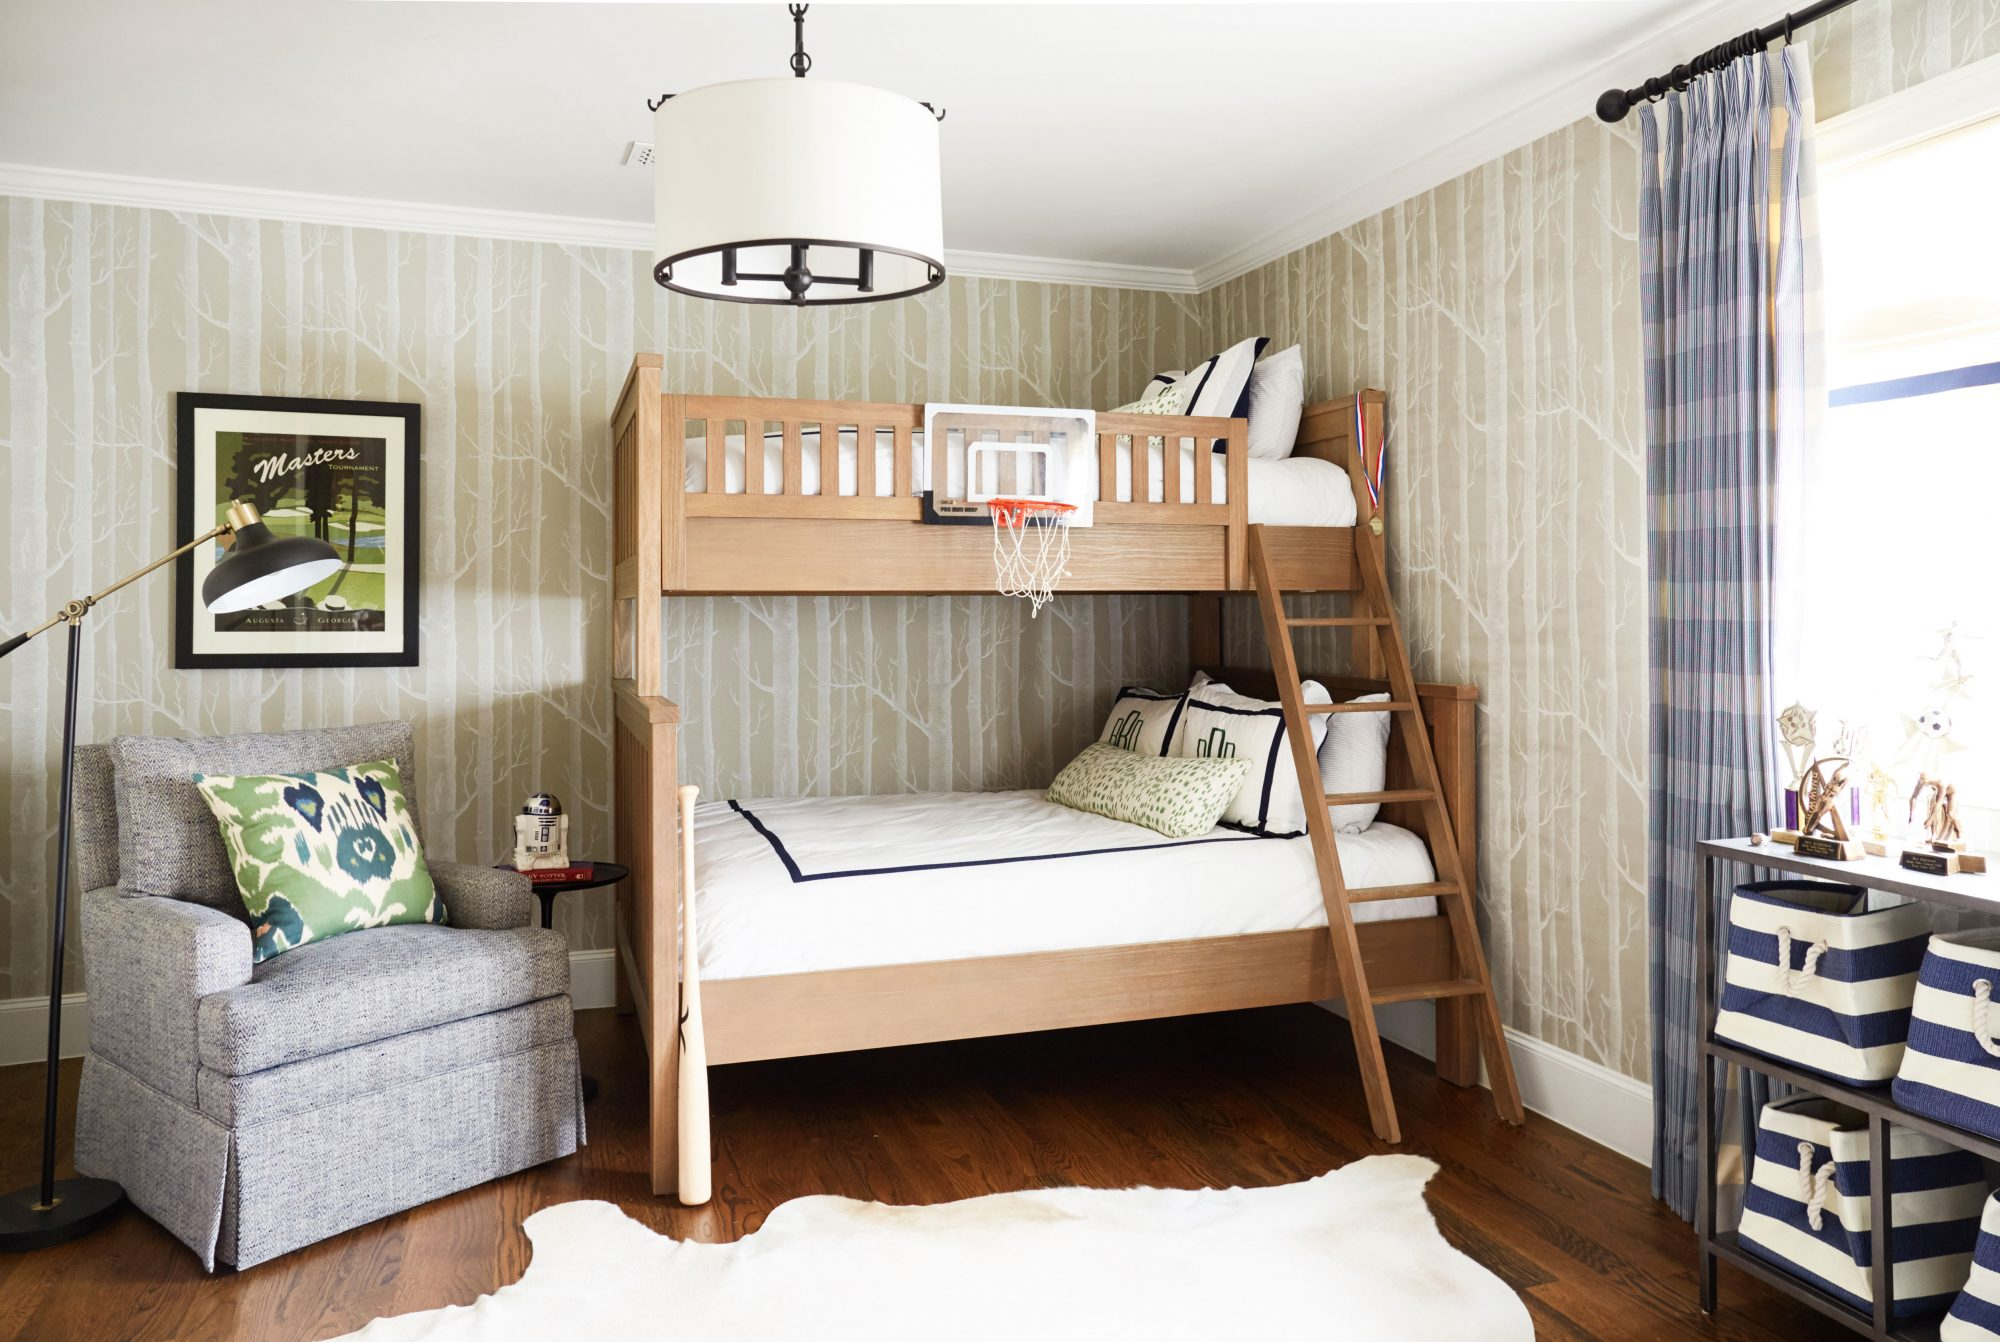 Boy's bedroom with bunkbeds and wood wallpaper